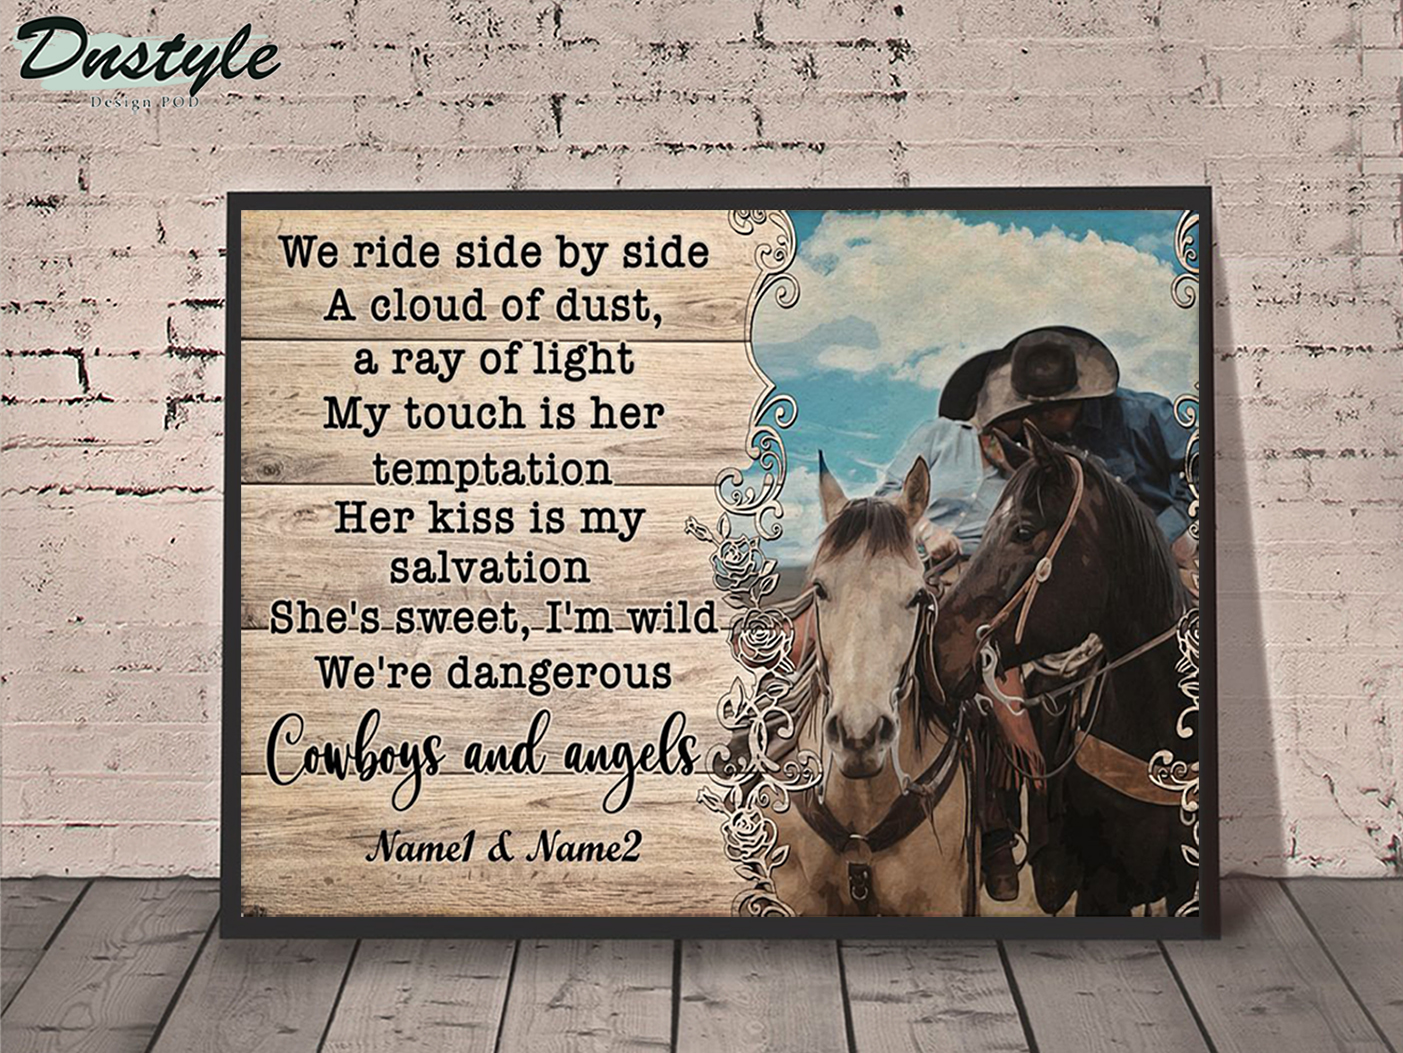 Personalized custom name cowboy and angels we ride side by side a cloud of dust poster A1